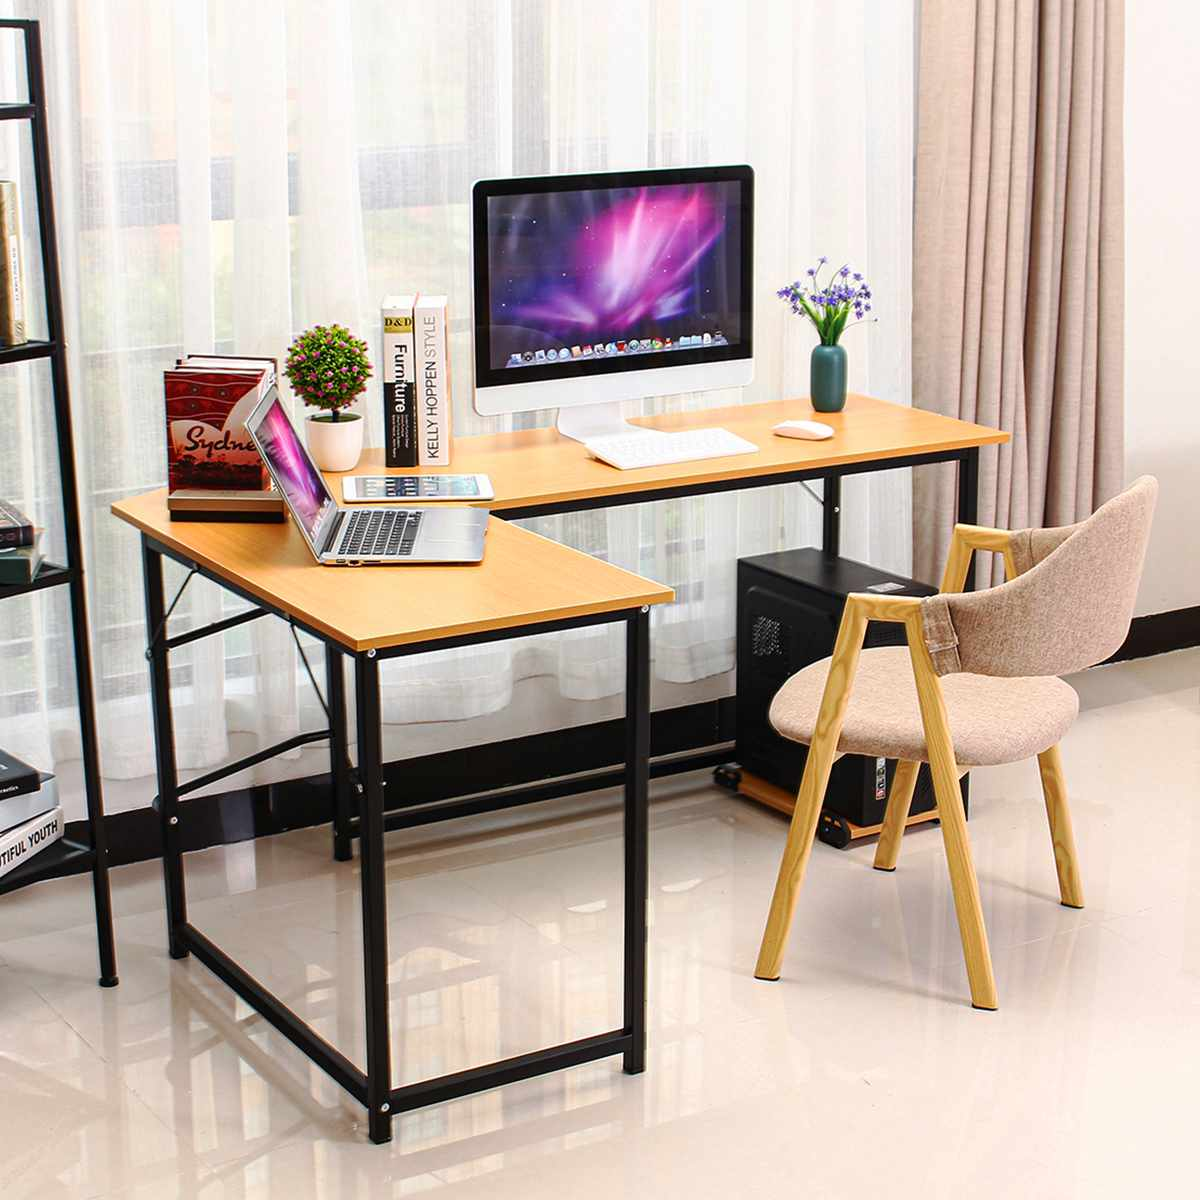 US $80.85 47% OFF|Wooden Office Computer Writing Desk Home Gaming PC  Furnitur L Shape Corner Study Computer Table laptop desk laptop stand-in  Laptop ...